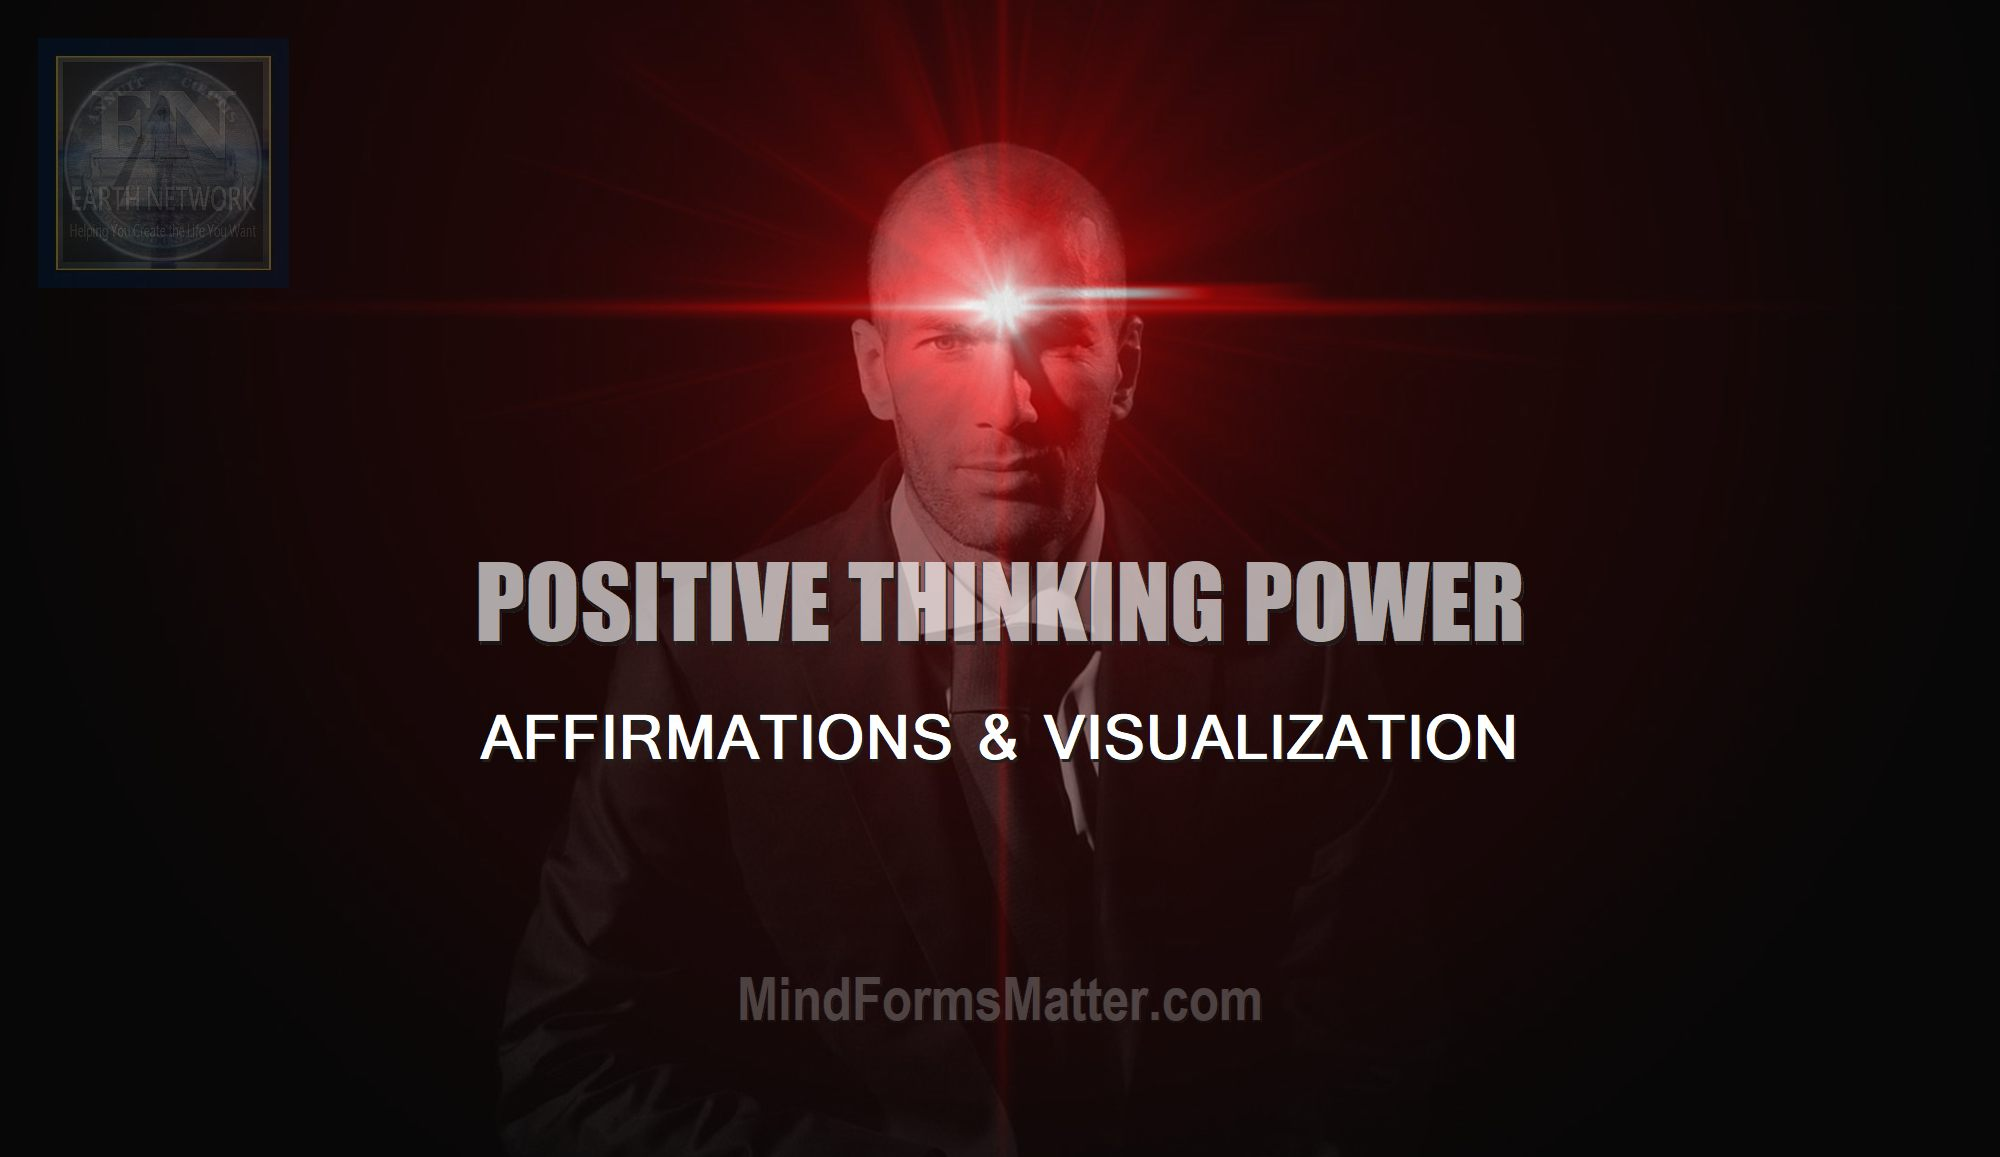 man-depicts-how-do-i-implement-positive-thinking-how-to-use-affirmations-visualization-to-influence-create-events-power